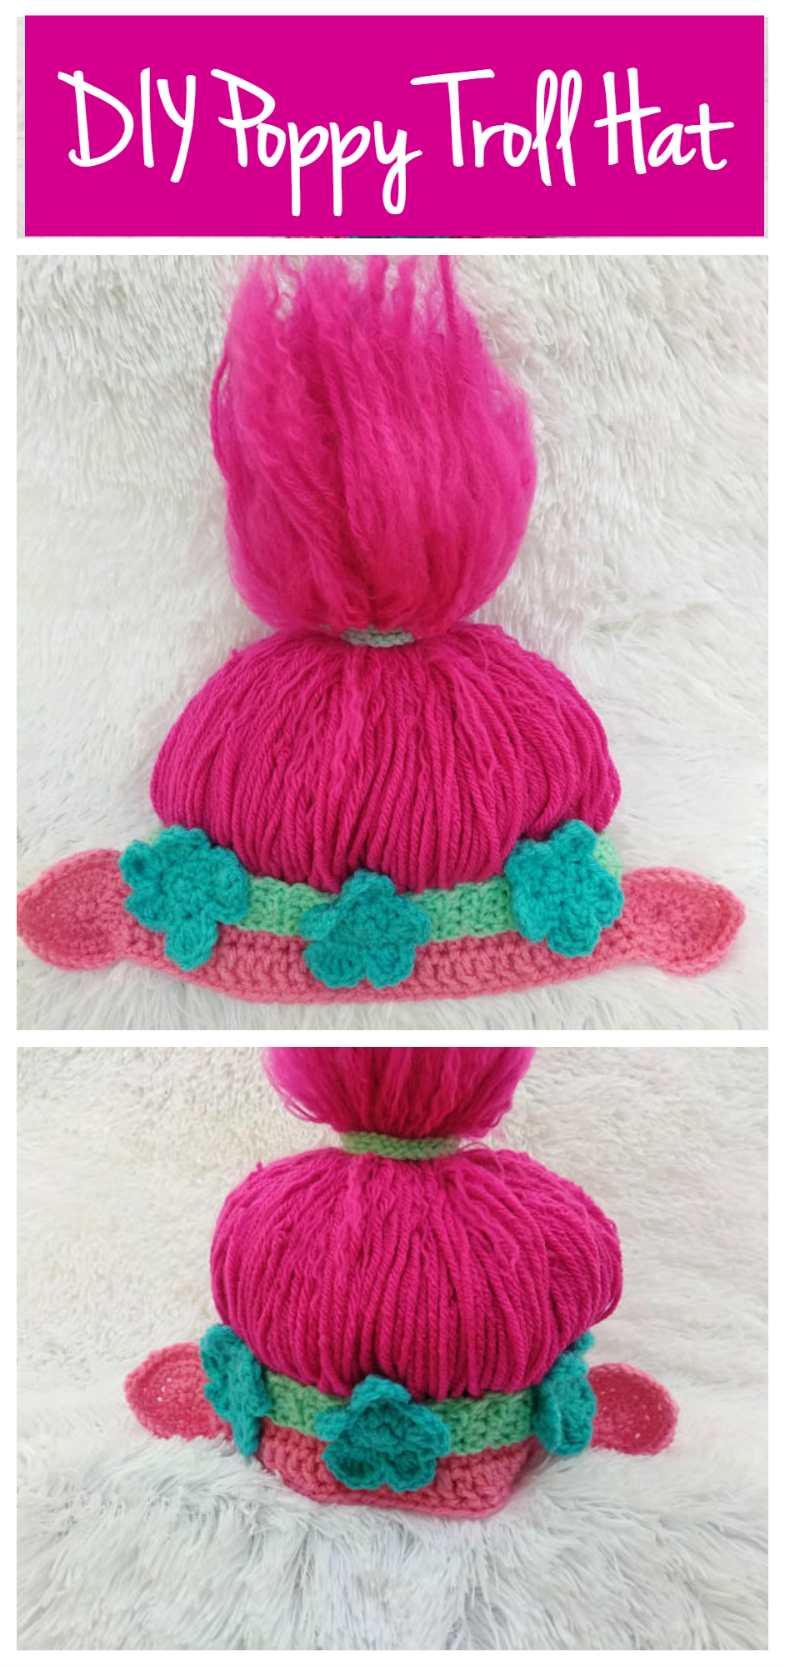 Trolls Crochet Pattern Interesting Inspiration Ideas